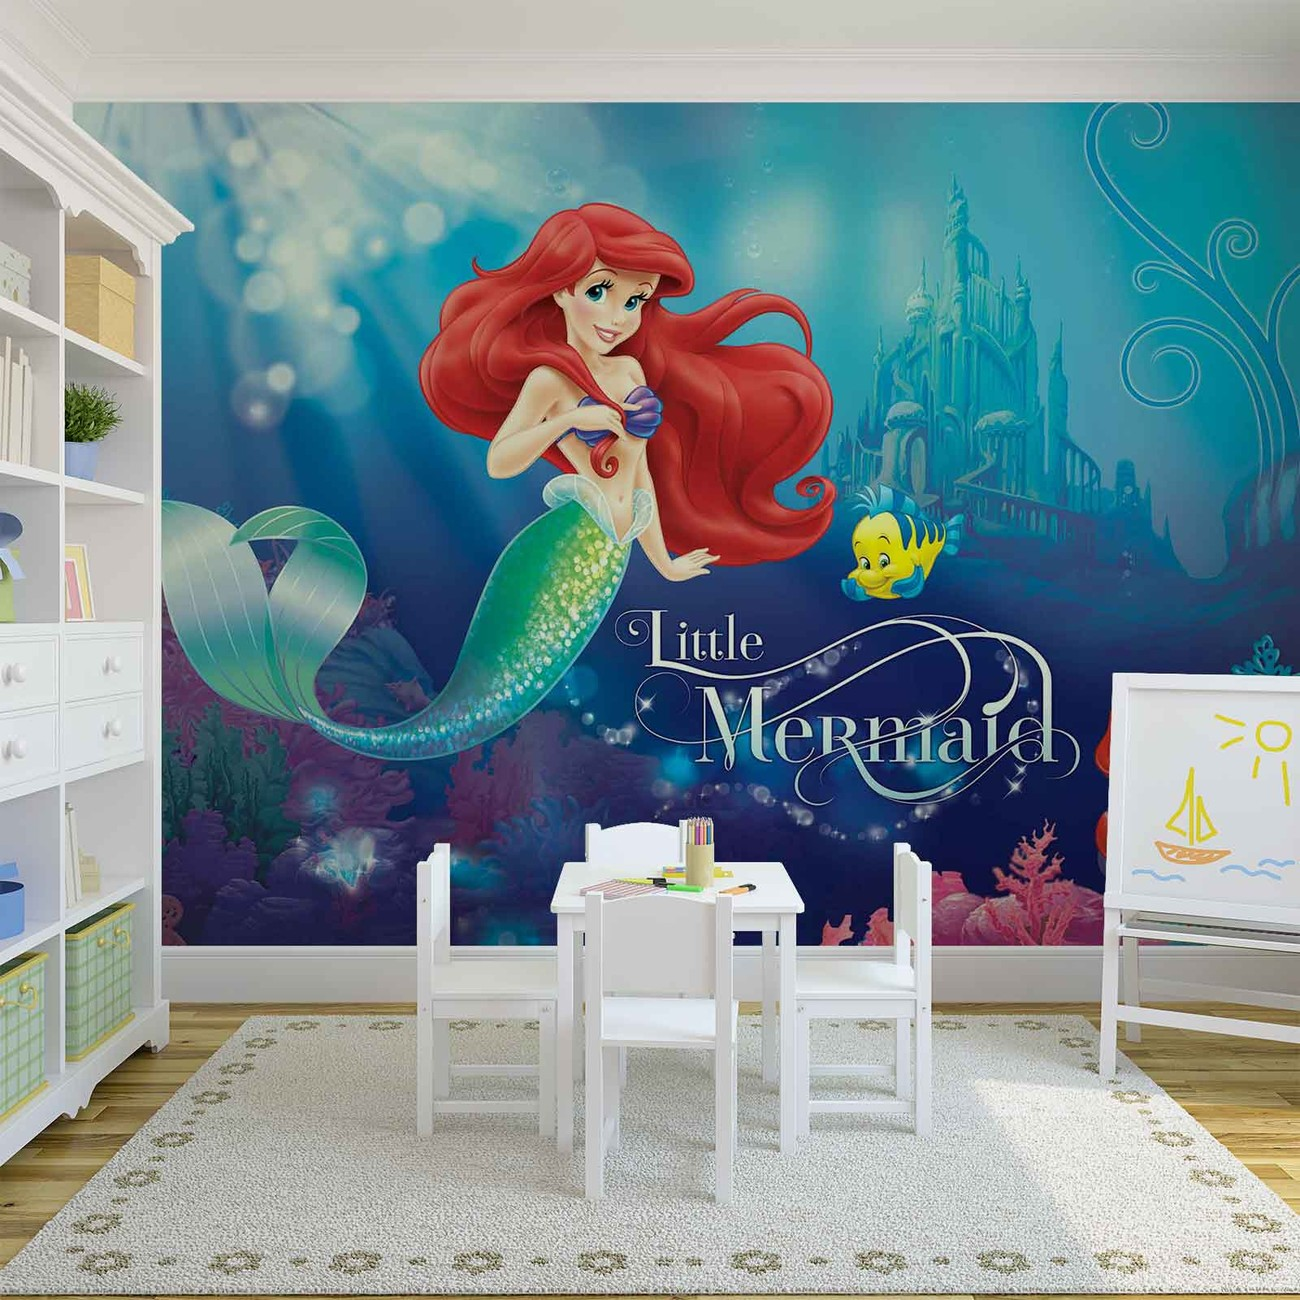 Disney princesses ariel wall paper mural buy at europosters for Disney princess wall mural tesco